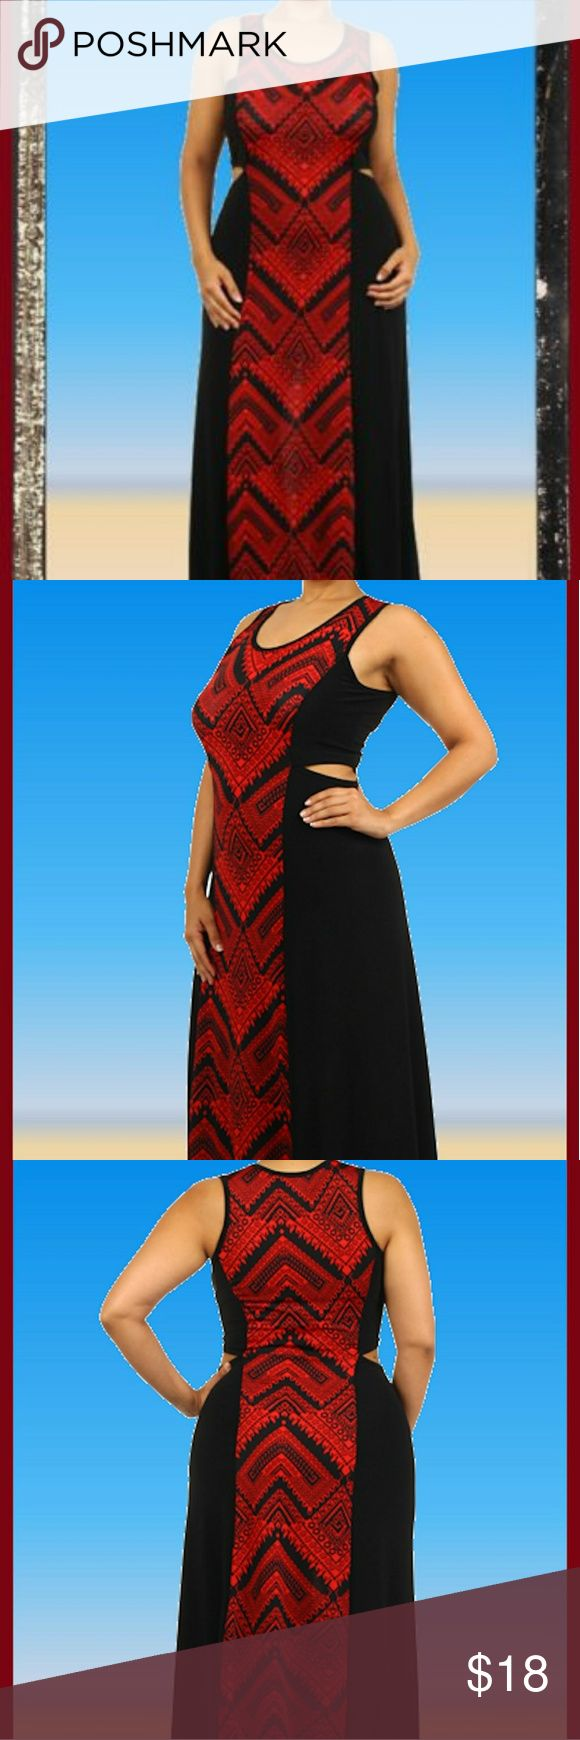 Plus Sexy Red black Aztec maxi a line dress 1x 2x New bandana chevron aztec red black maxi dress wirh sexy cut outs. Slimming print. Run one size small so 1x more of large and 2x more of 1x. 2x fit me and im 14 to 16. Pretty Young Thing  Dresses Maxi